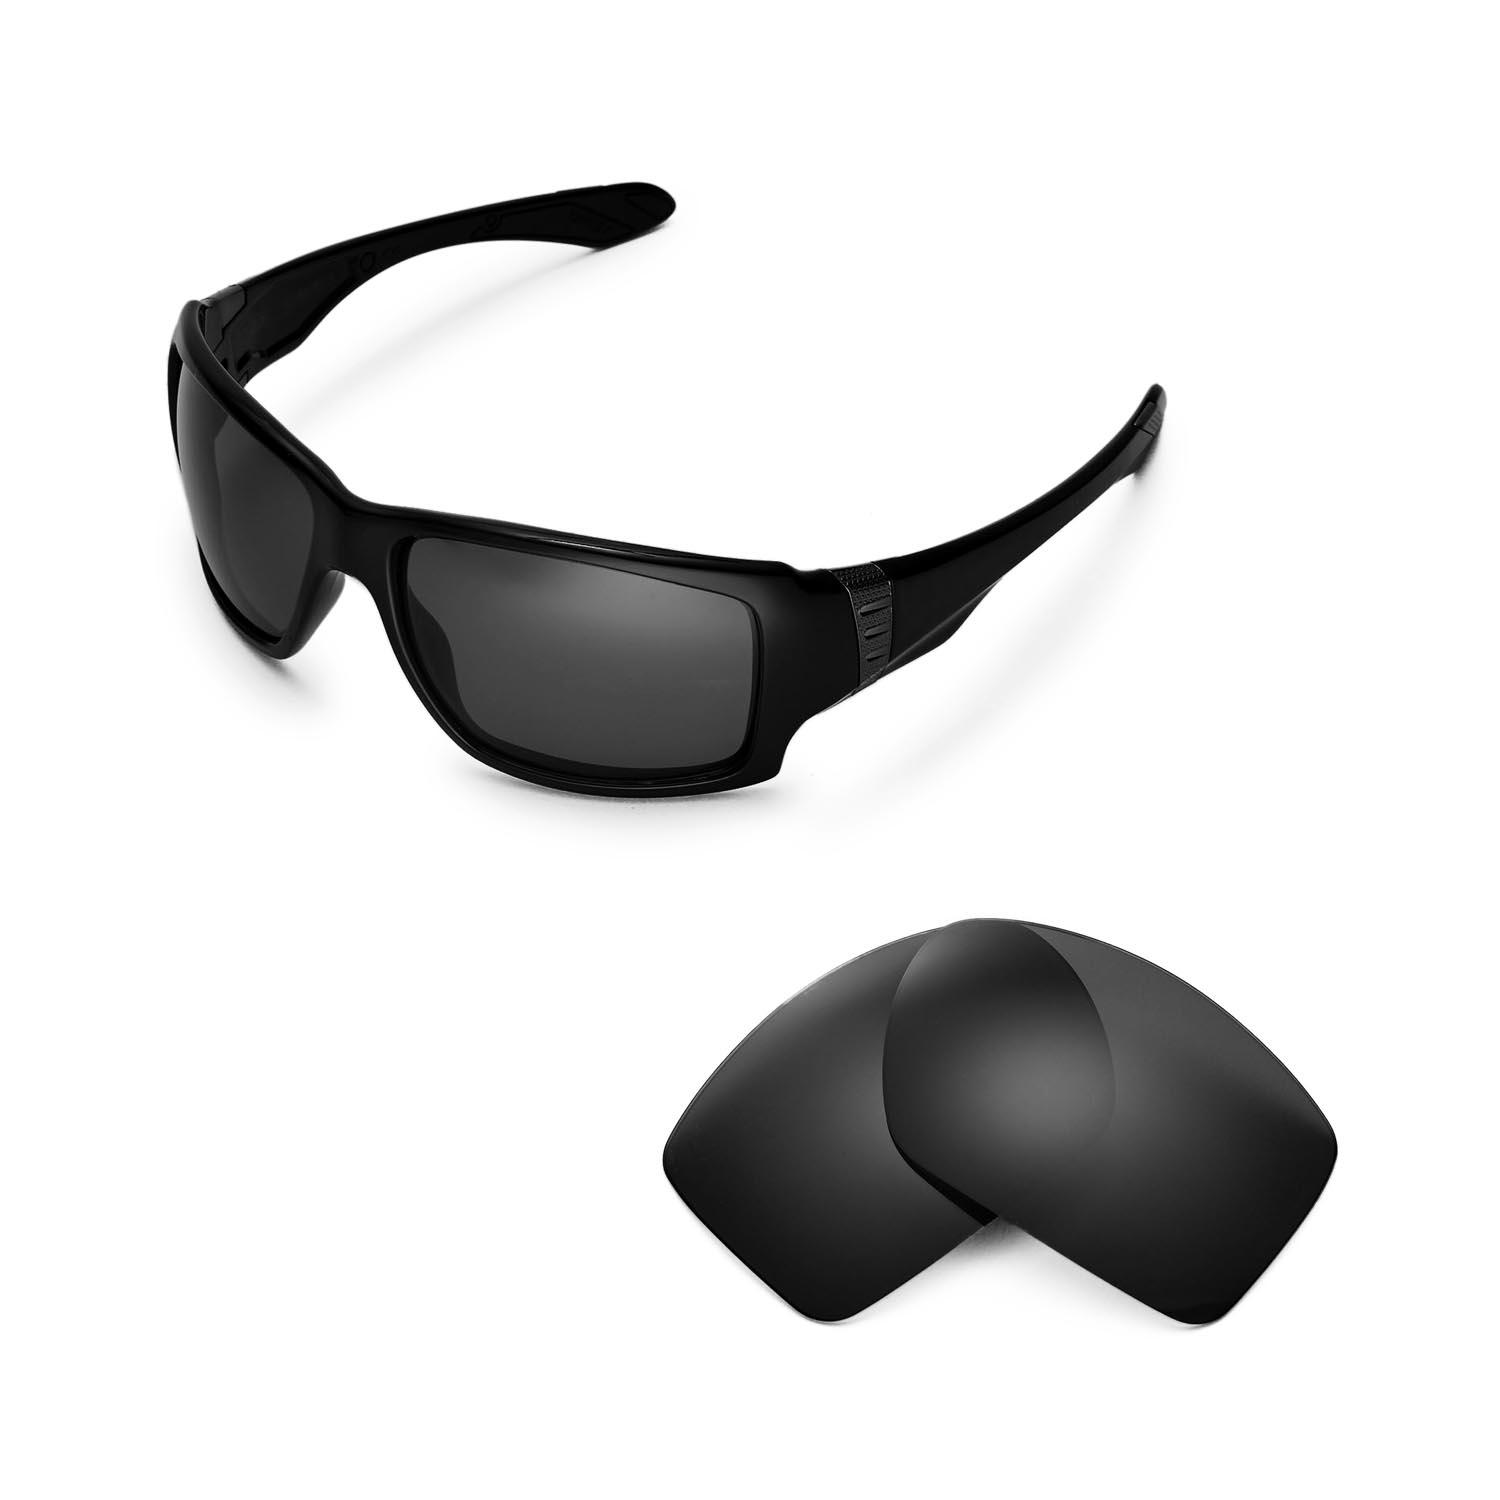 a6314b1cfe3 Details about Walleva Polarized Black Replacement Lenses for Oakley Big Taco  Sunglasses